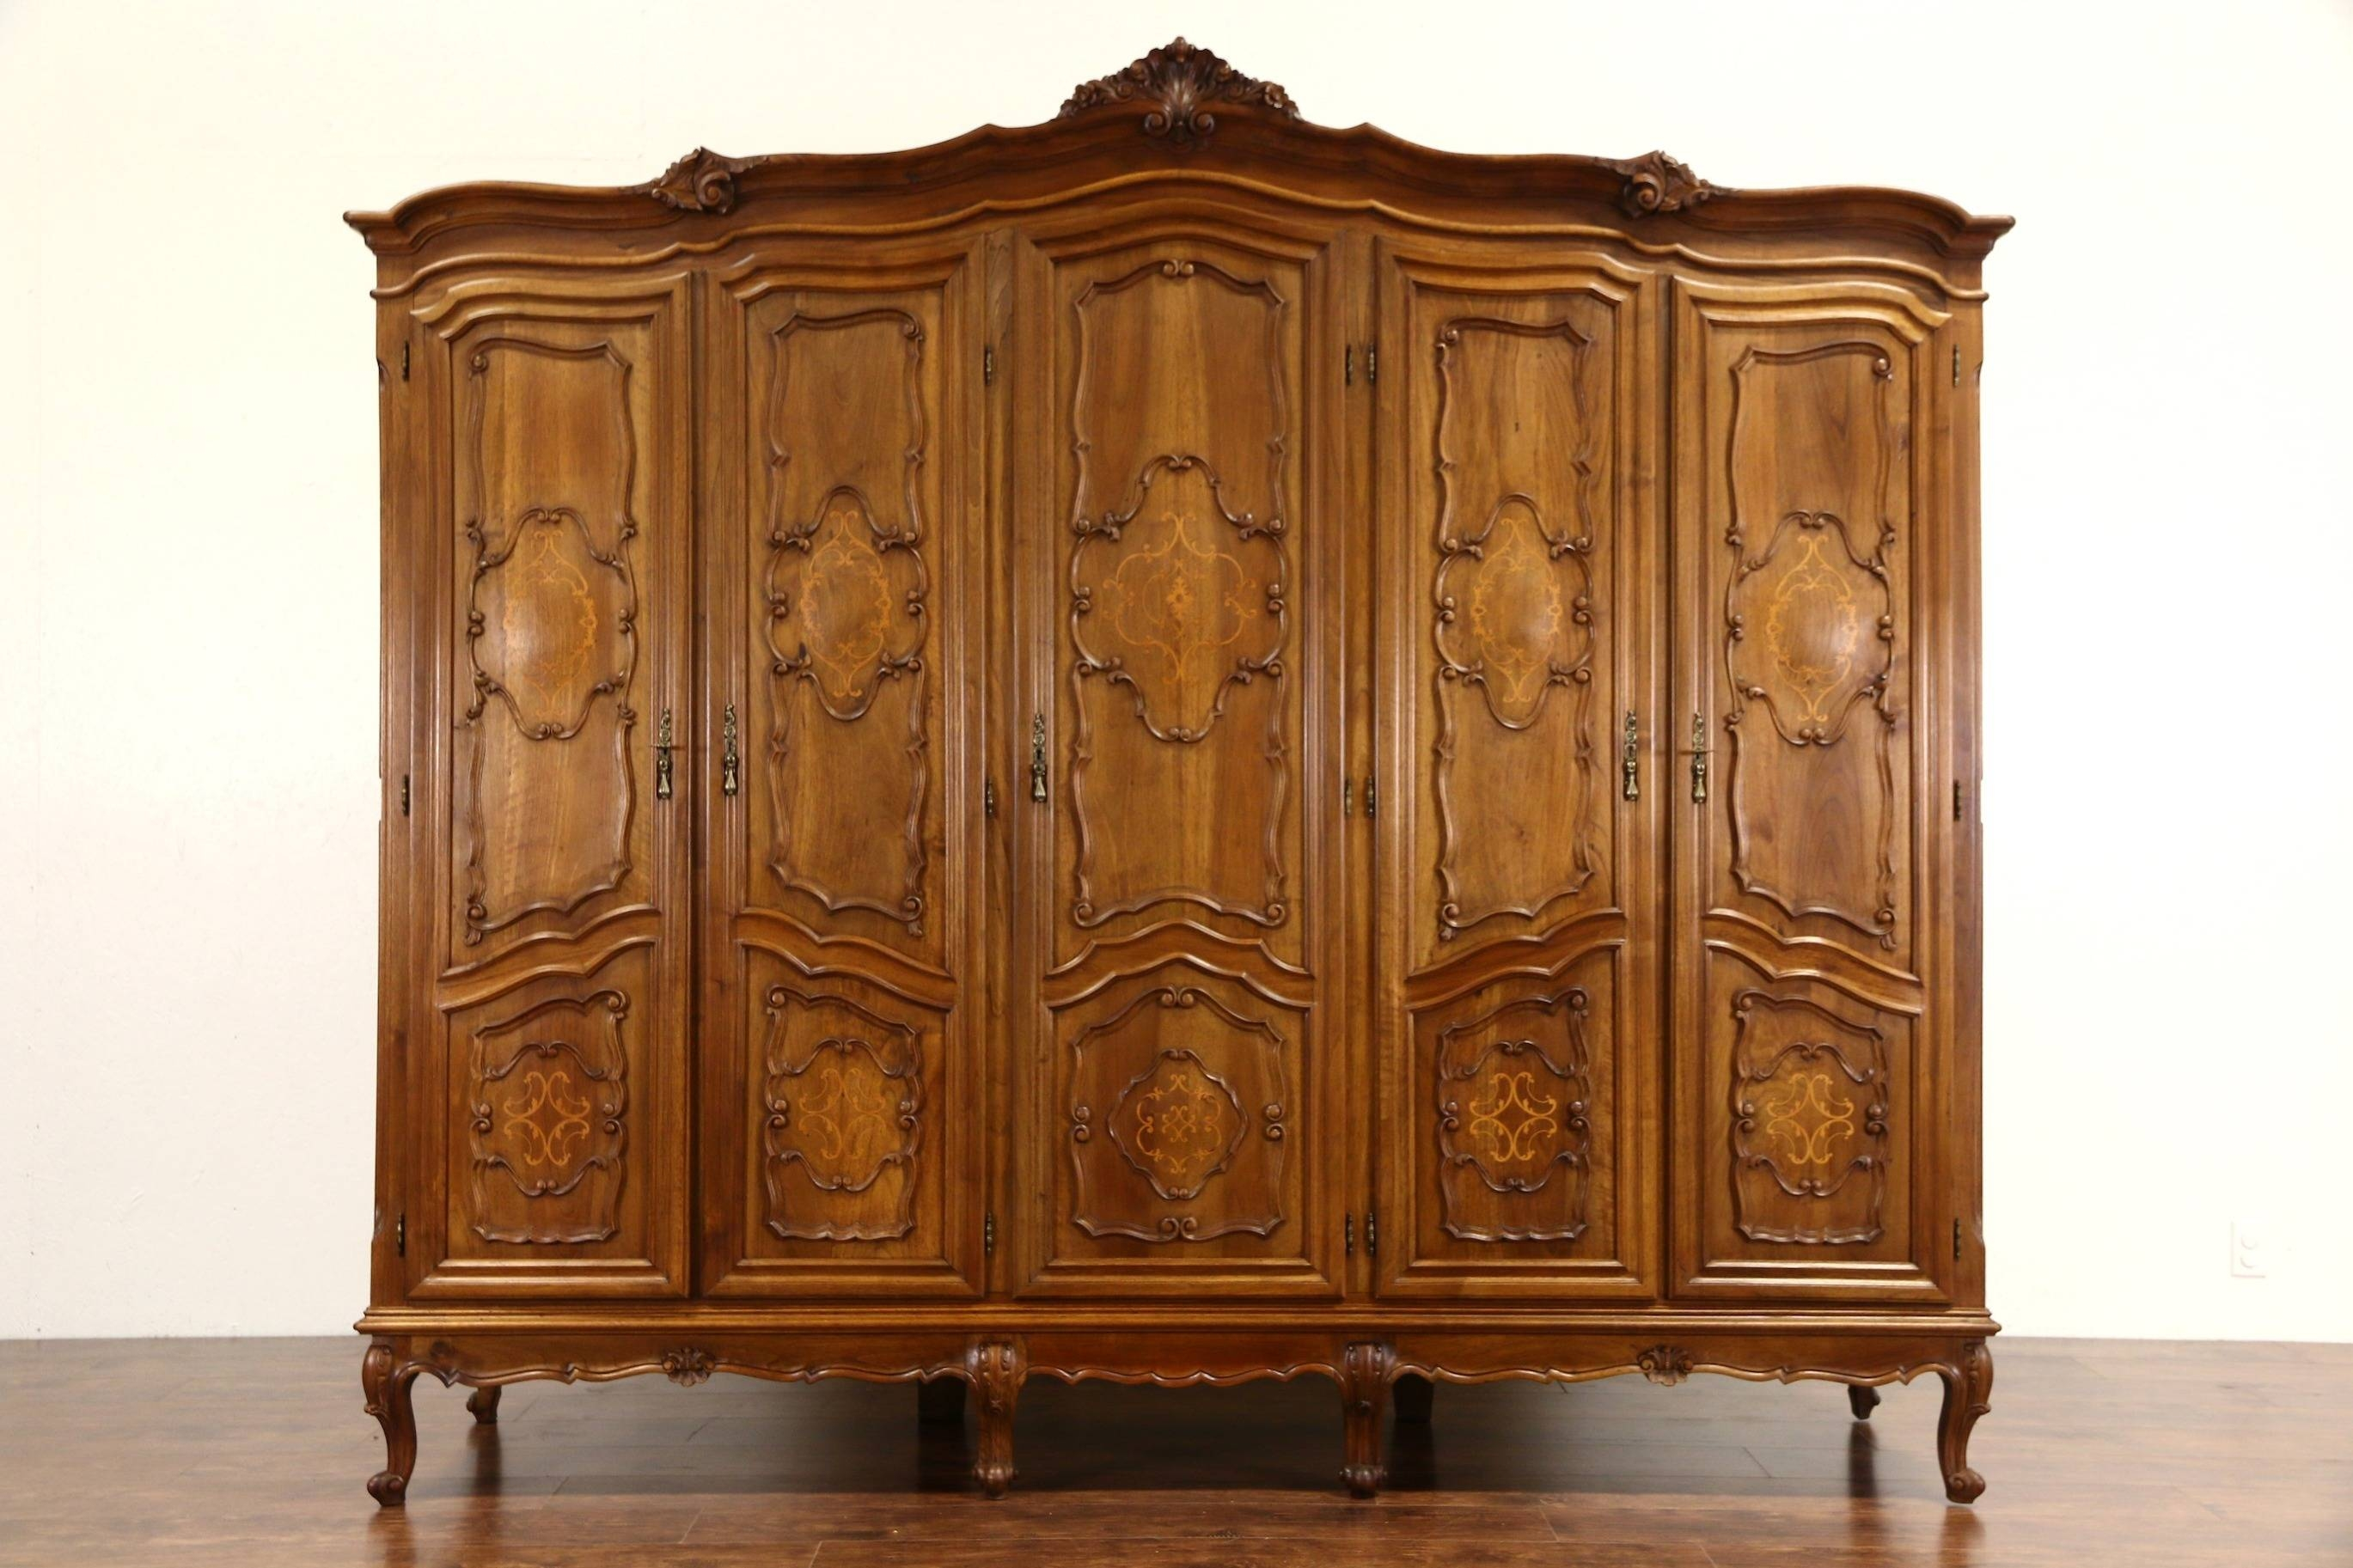 Bedroom Furniture : Victorian Armoire Oak Armoire Beautiful Wooden inside Victorian Wardrobes for Sale (Image 8 of 15)